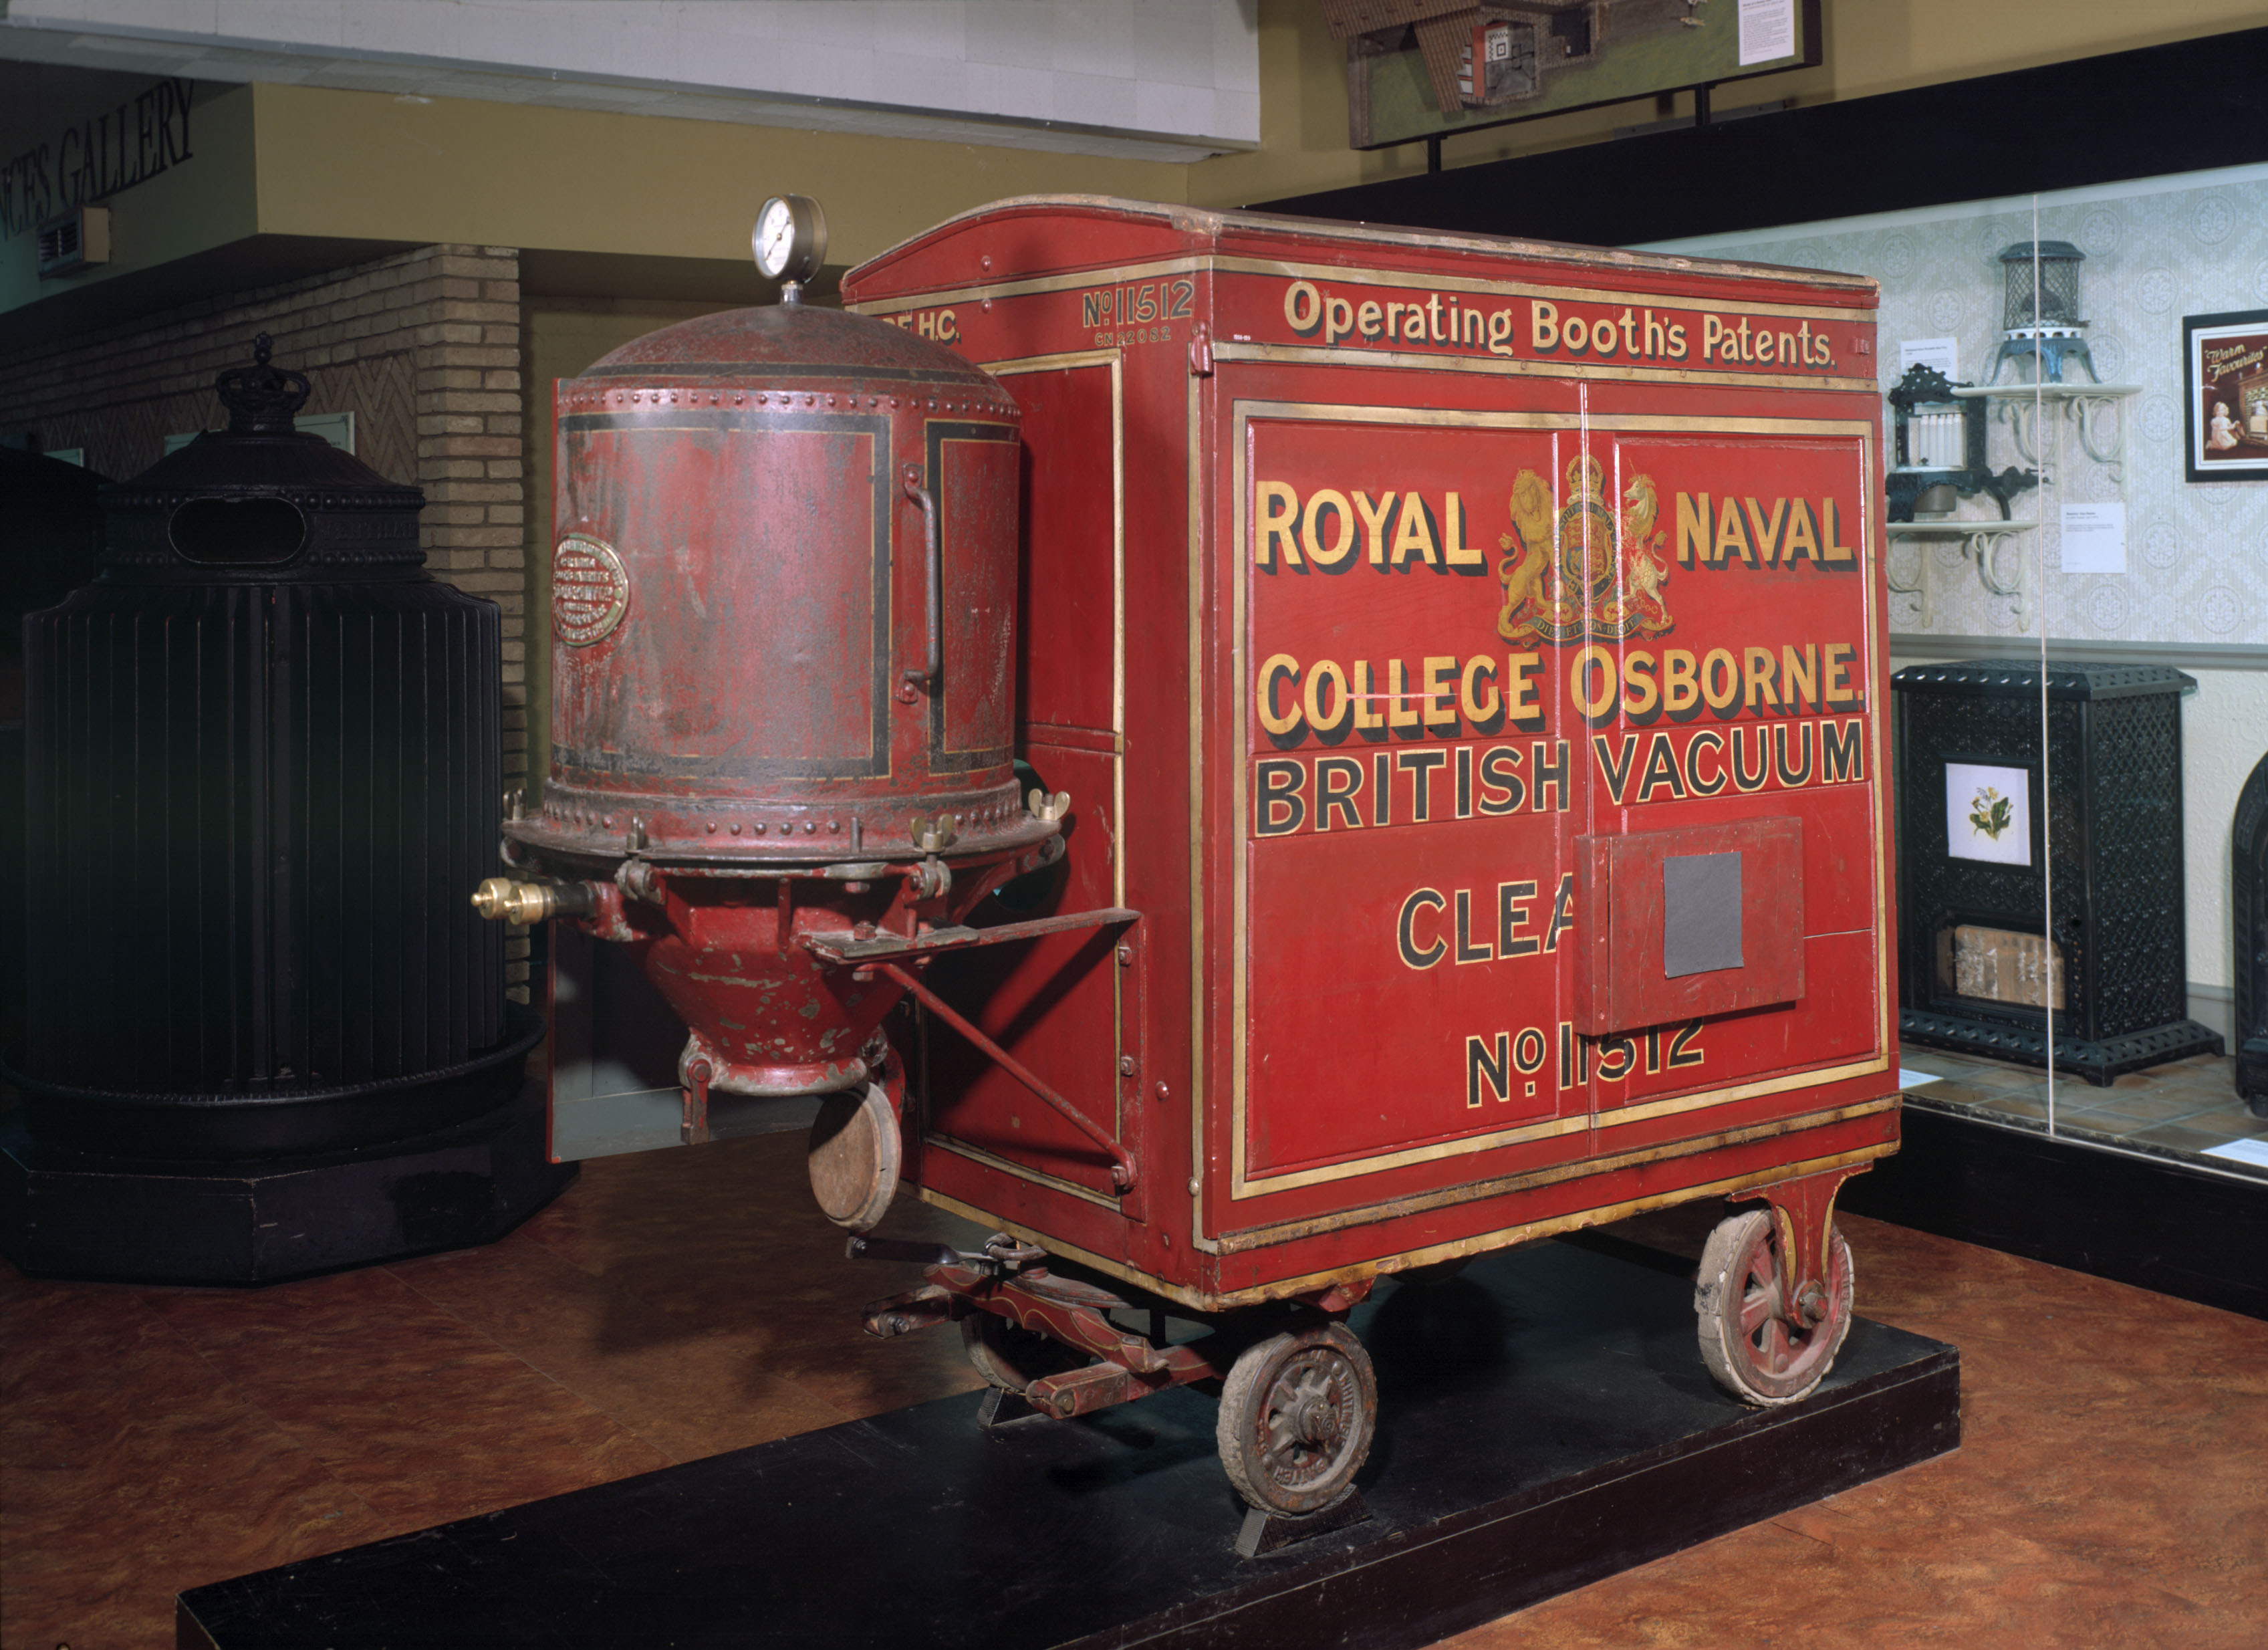 The invention of the vacuum cleaner is generally credited to Hubert Cecil Booth. He built his first machine in 1901 and this one is very similar. It was made for Osborne House, a training college for naval officers on the Isle of Wight.